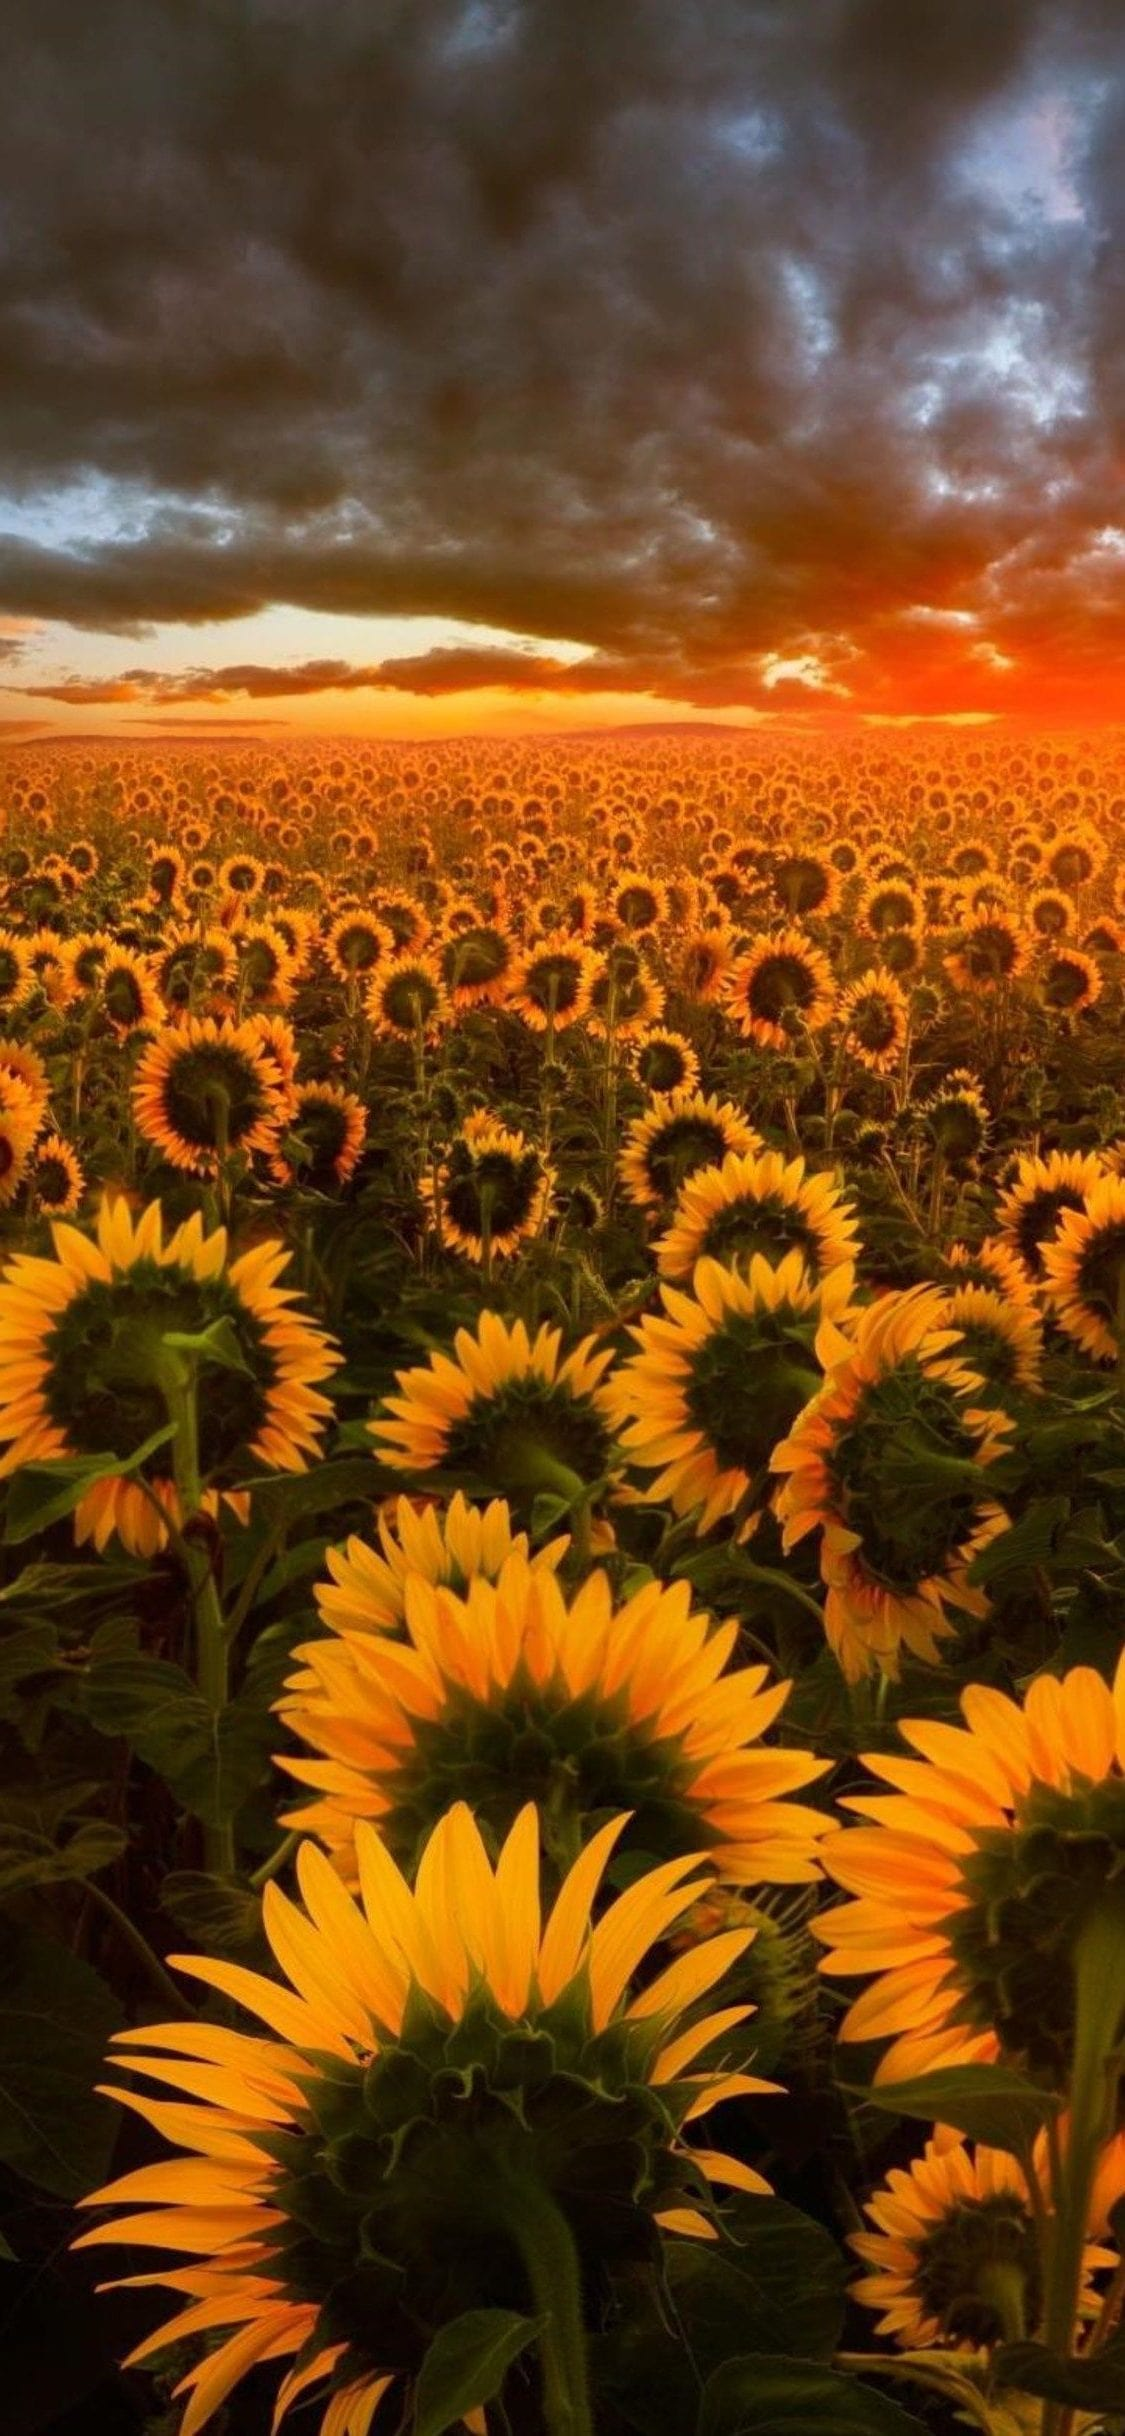 Iphone Sunflower Background Kolpaper Awesome Free Hd Wallpapers